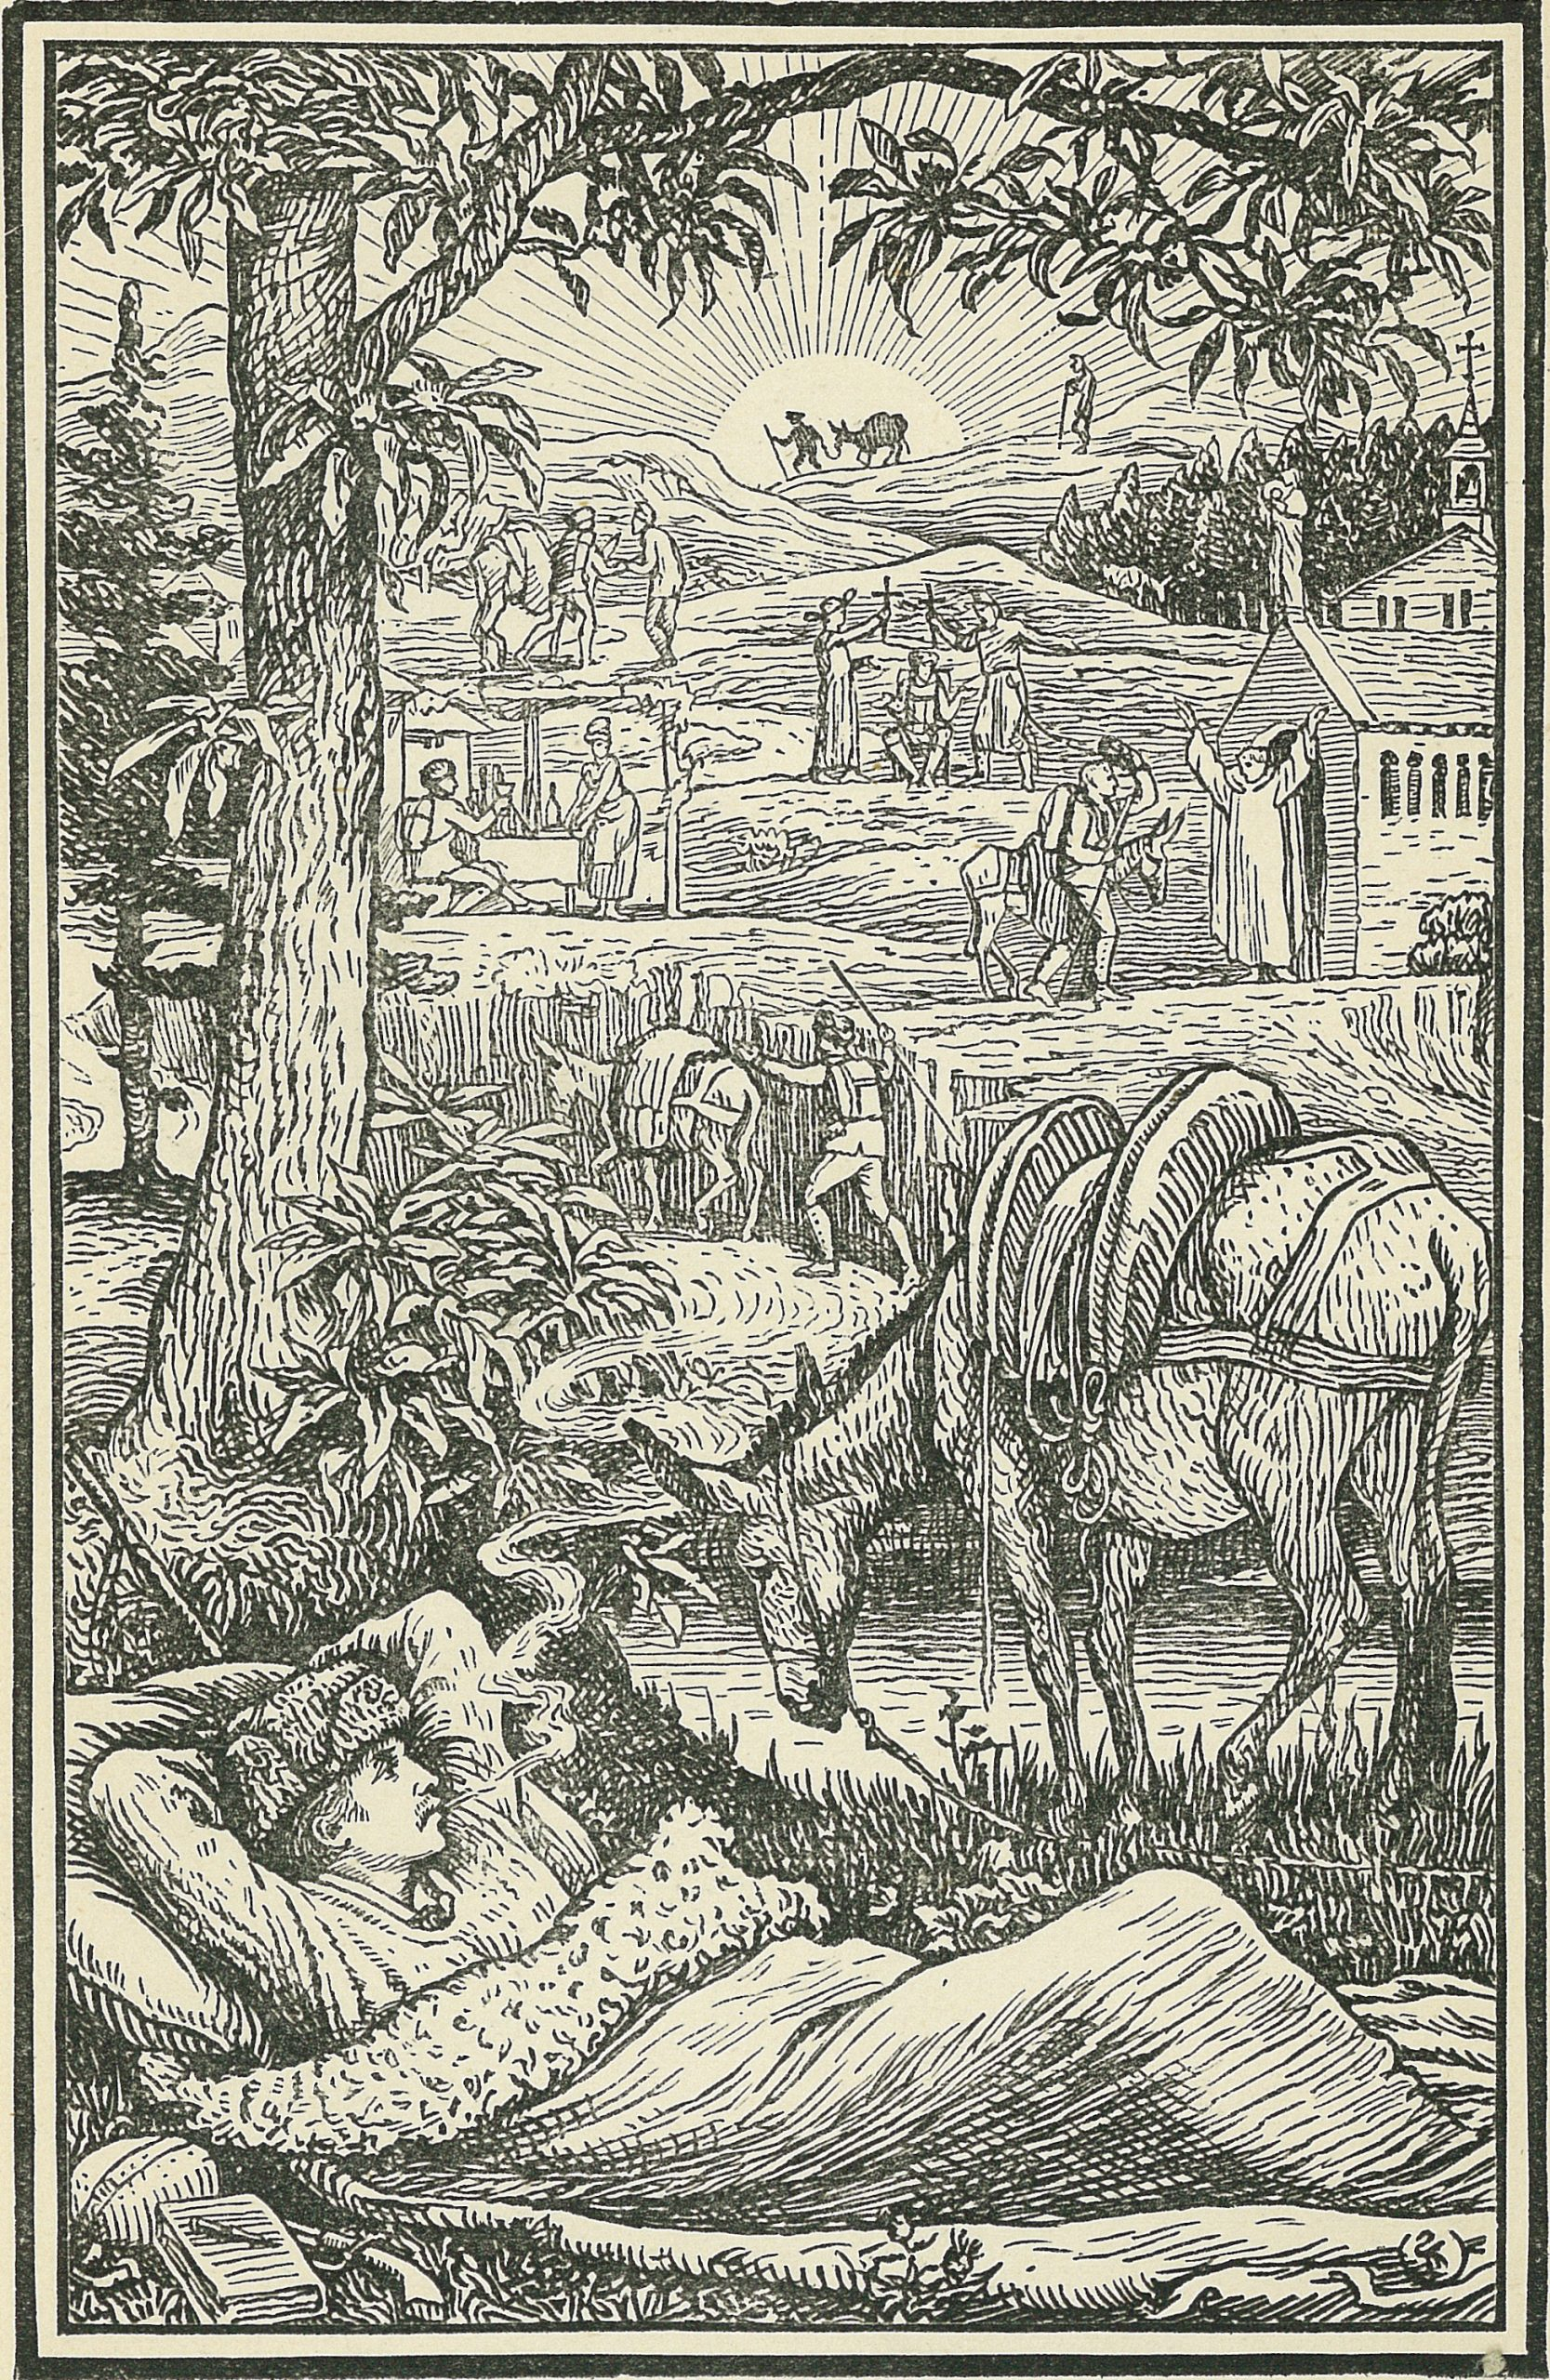 Black and white frontispiece of Robert Louis Stevenson's Travels with a Donkey in the Cevennes